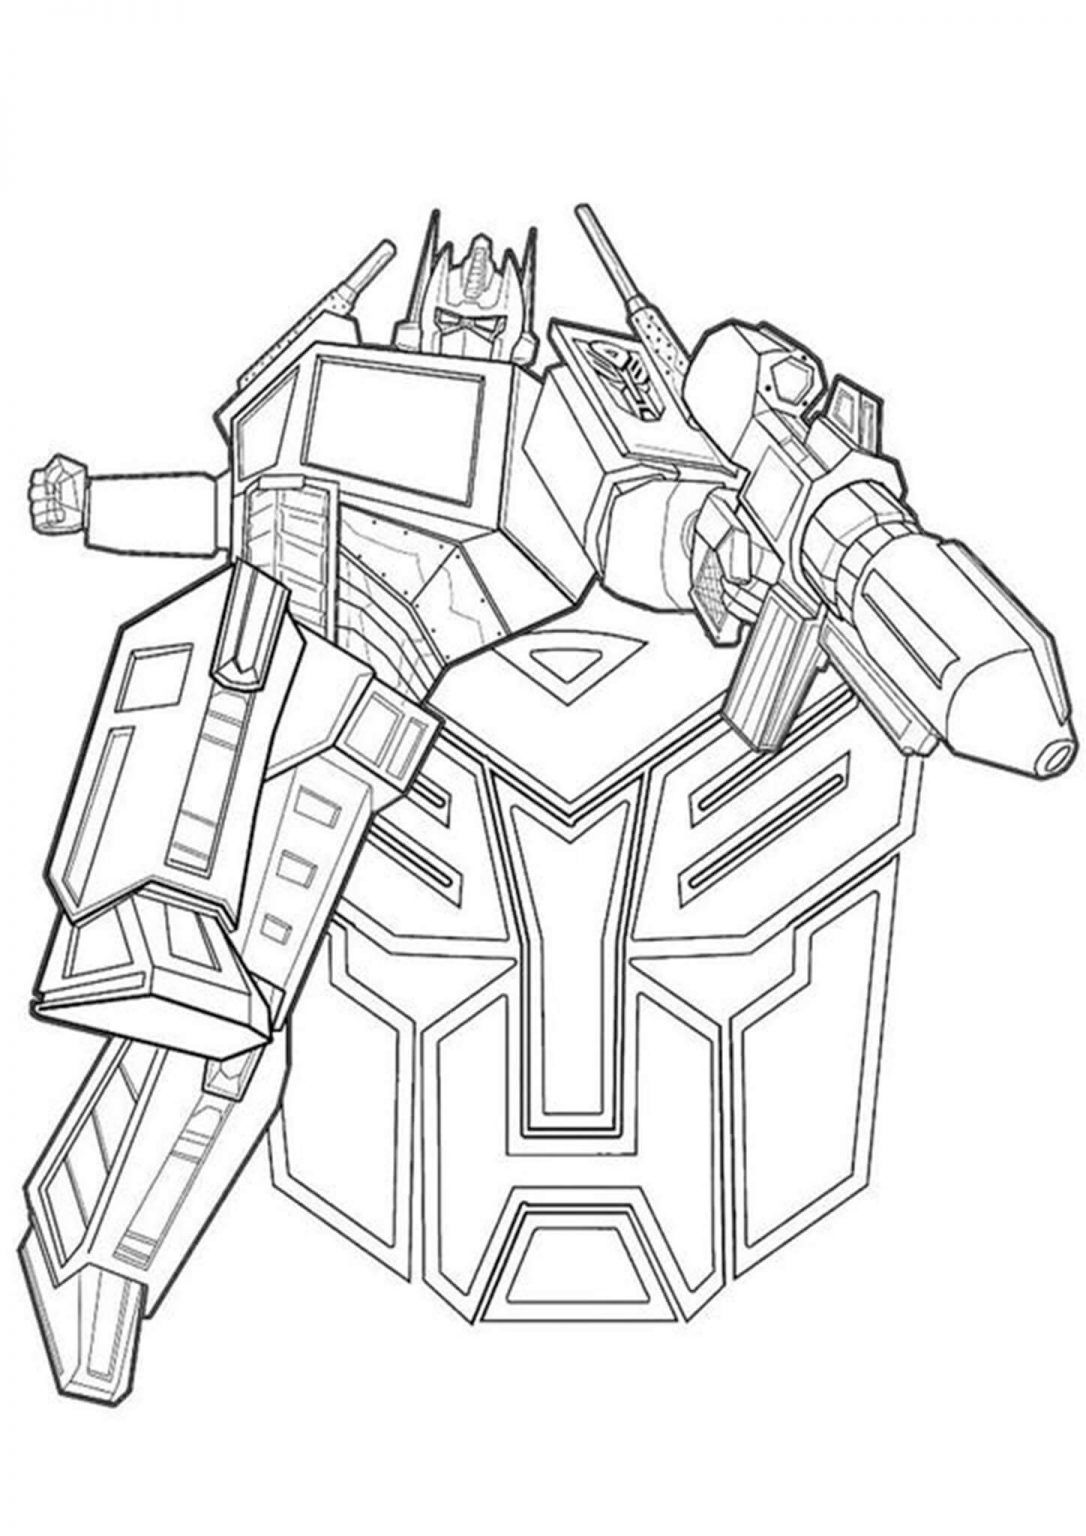 Bumblebee Transformer Coloring Pages Printable Collection Free Coloring Sheets Transformers Coloring Pages Bee Coloring Pages Coloring Pages Inspirational